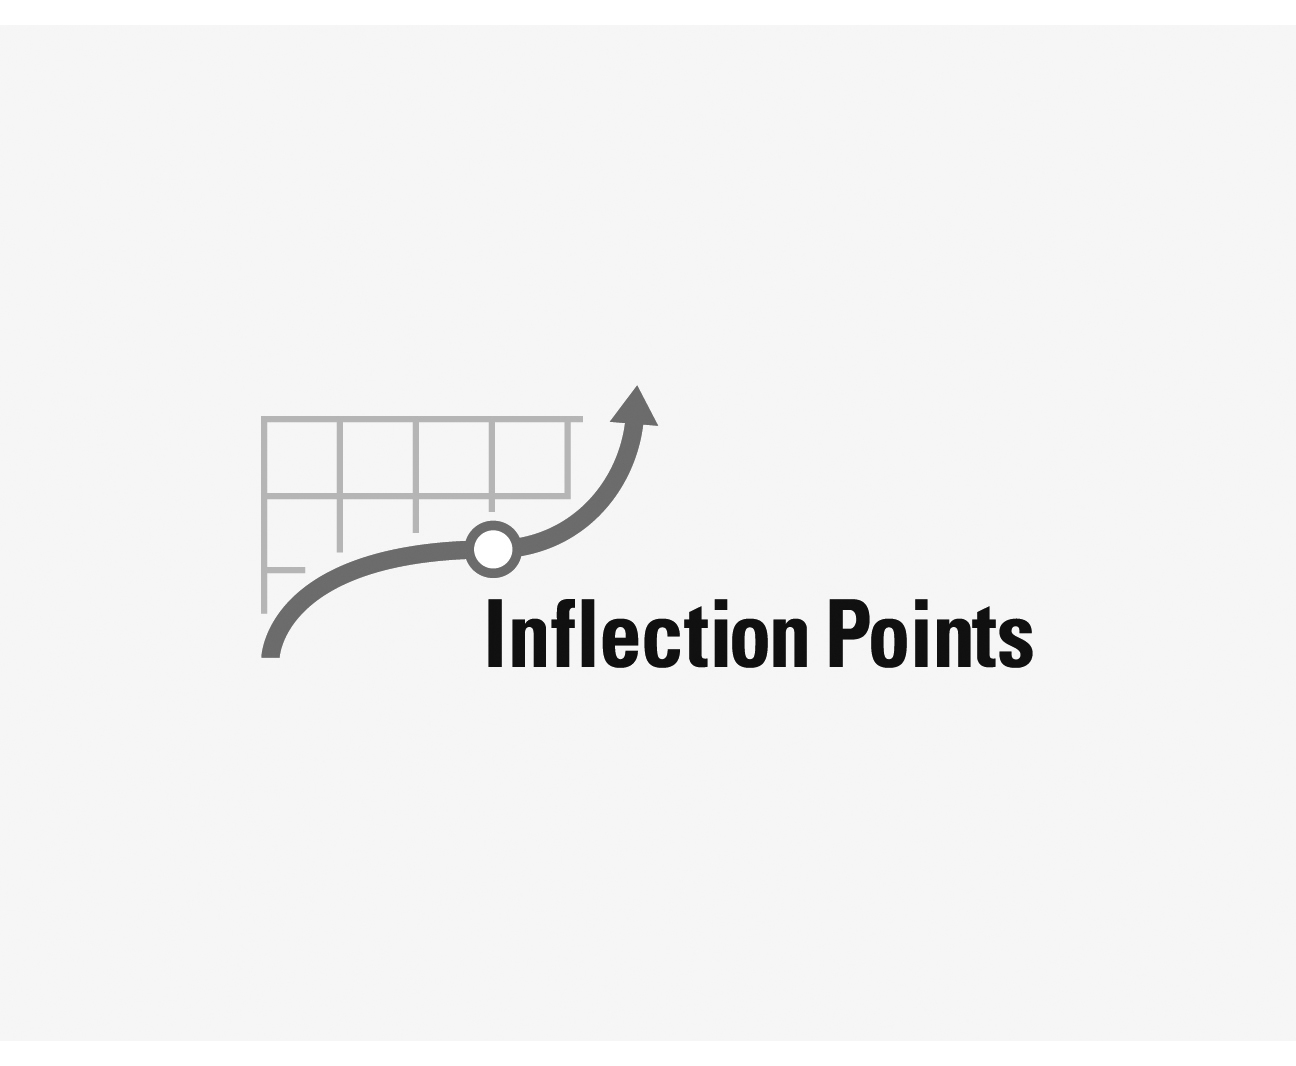 logo_inflectionpoints_gs.jpg